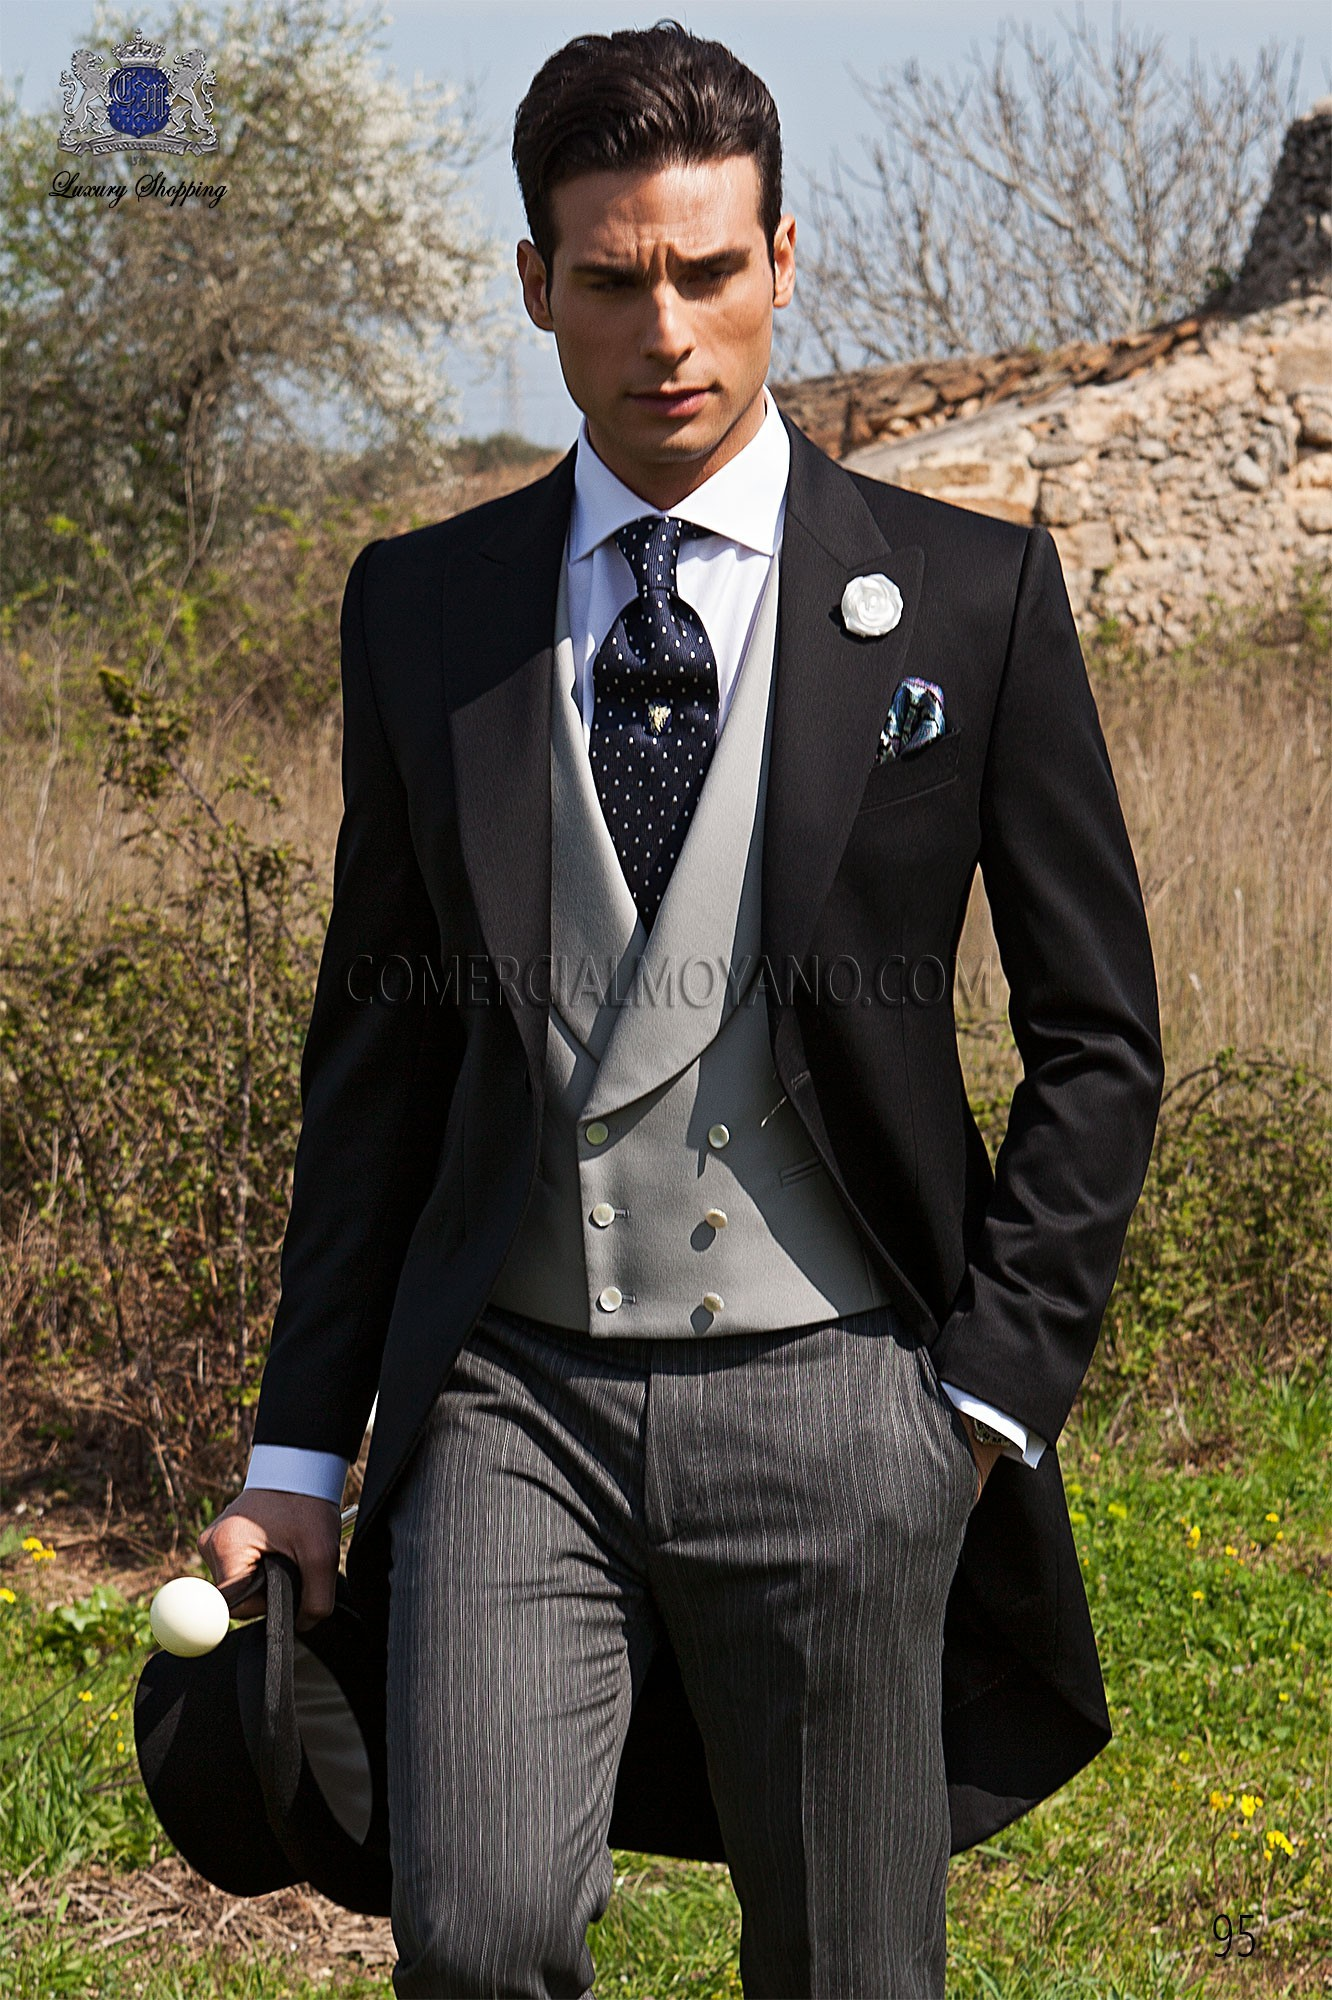 Italian bespoke wedding morning suit, black coat in pure satin wool and formal pants, style 95 Ottavio Nuccio Gala, Gentleman collection.